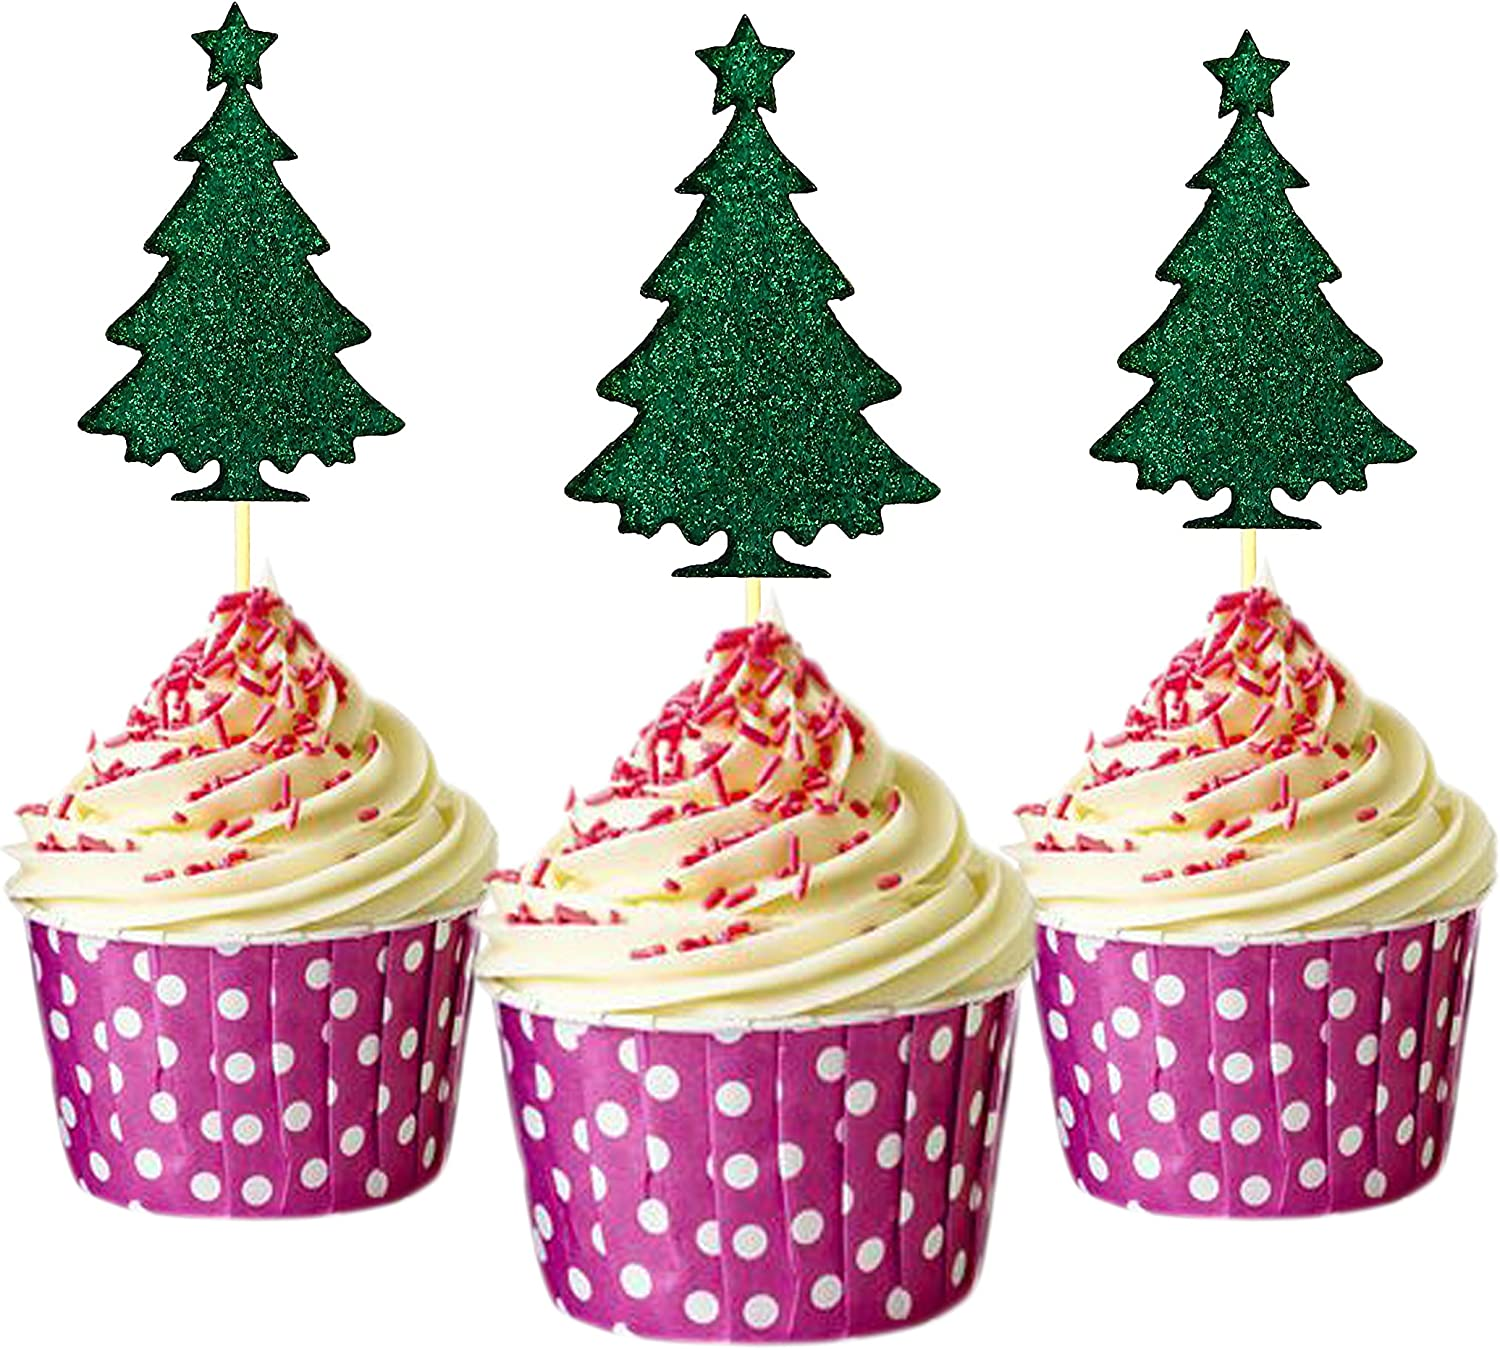 12 Christmas Tree Festive Edible Cupcake Toppers Decorations Cake Xmas Cut